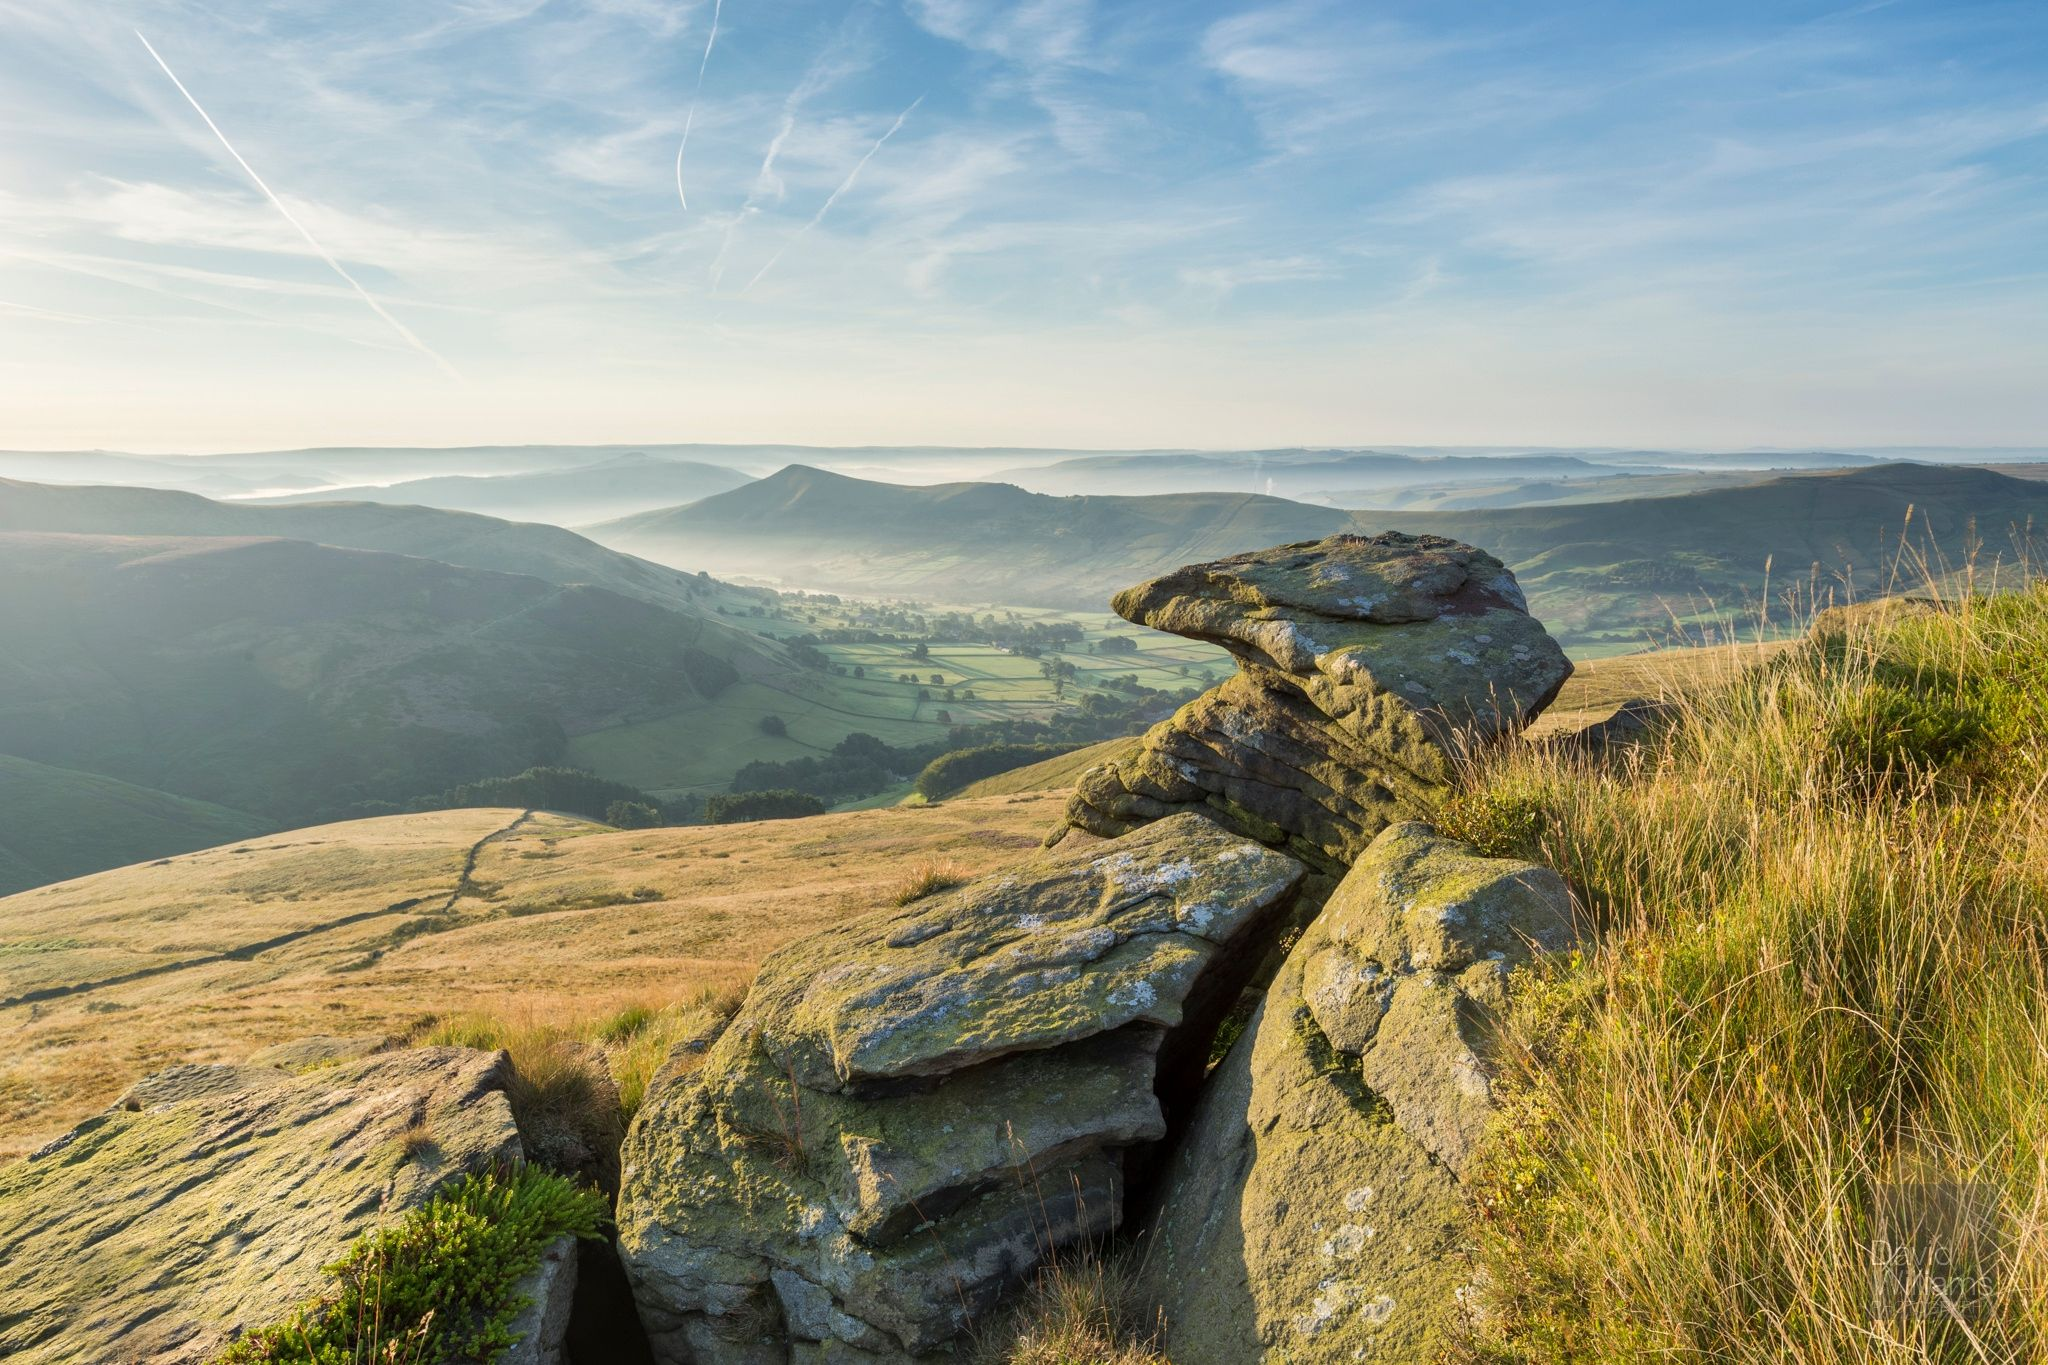 The view into Edale from Grindslow Knoll